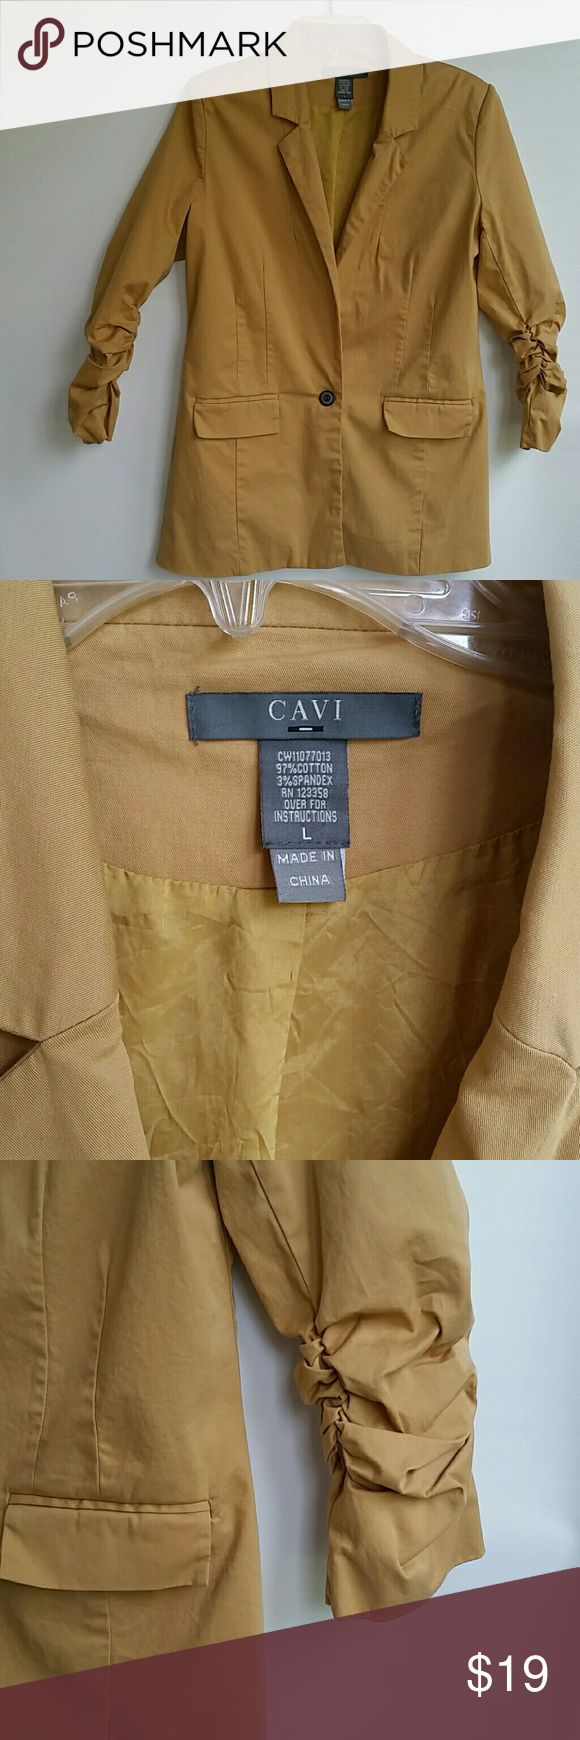 Cavi Mustard Yellow Light Jacket Size Large Cavi Mustard Yellow Light Jacket Size Large. Fully lined, has 2 slits in the bag for comfort and maximum movement.  Sleeves are 3/4 gathered around the elbow area. Has 2 pockets that have not been used yet and one button in the front. Excellent condition.  Please see pictures. cavi Jackets & Coats